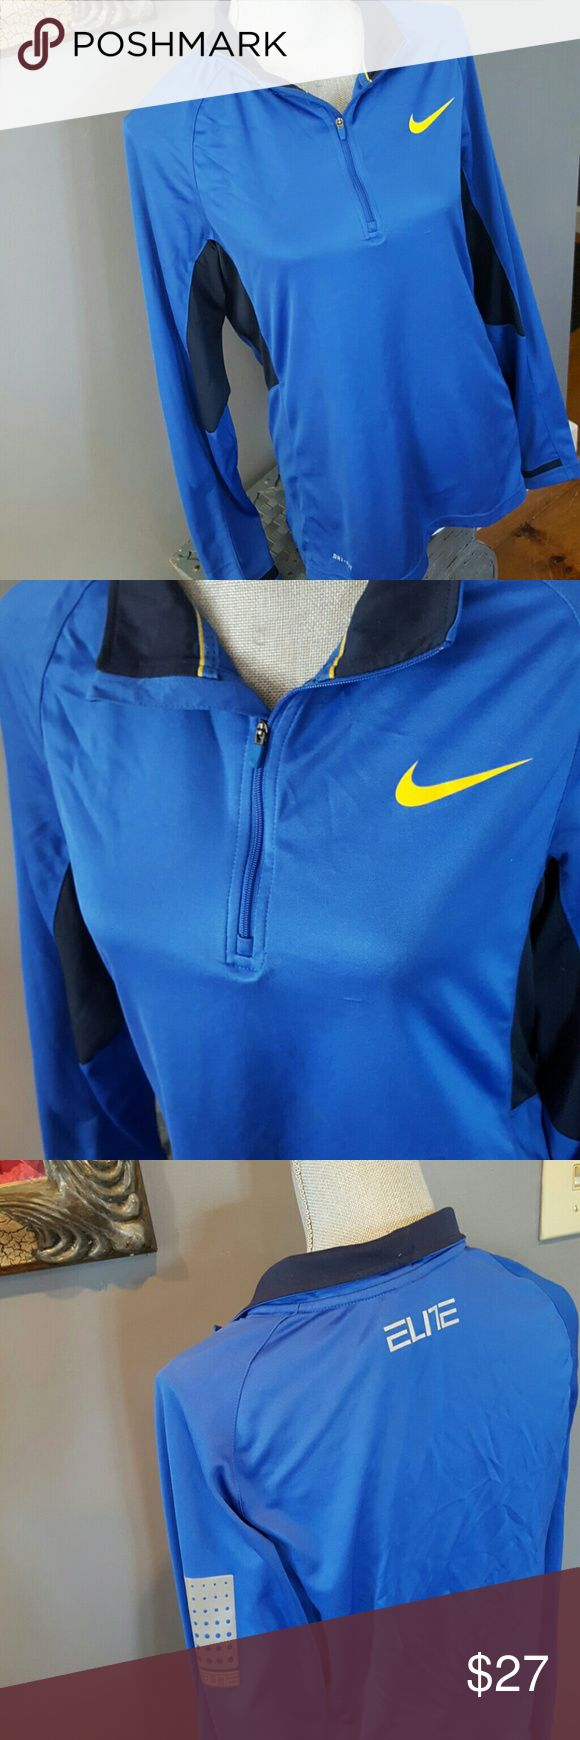 Nike ELITE 3/4 zip drifit long sleeve Mens small,  womens medium ,Bright Blue, dri fit. Great shape! Gently loved. There's a barely noticeable tiny snag on the front, you can barely see it lol see picture. Nike Shirts Tees - Long Sleeve